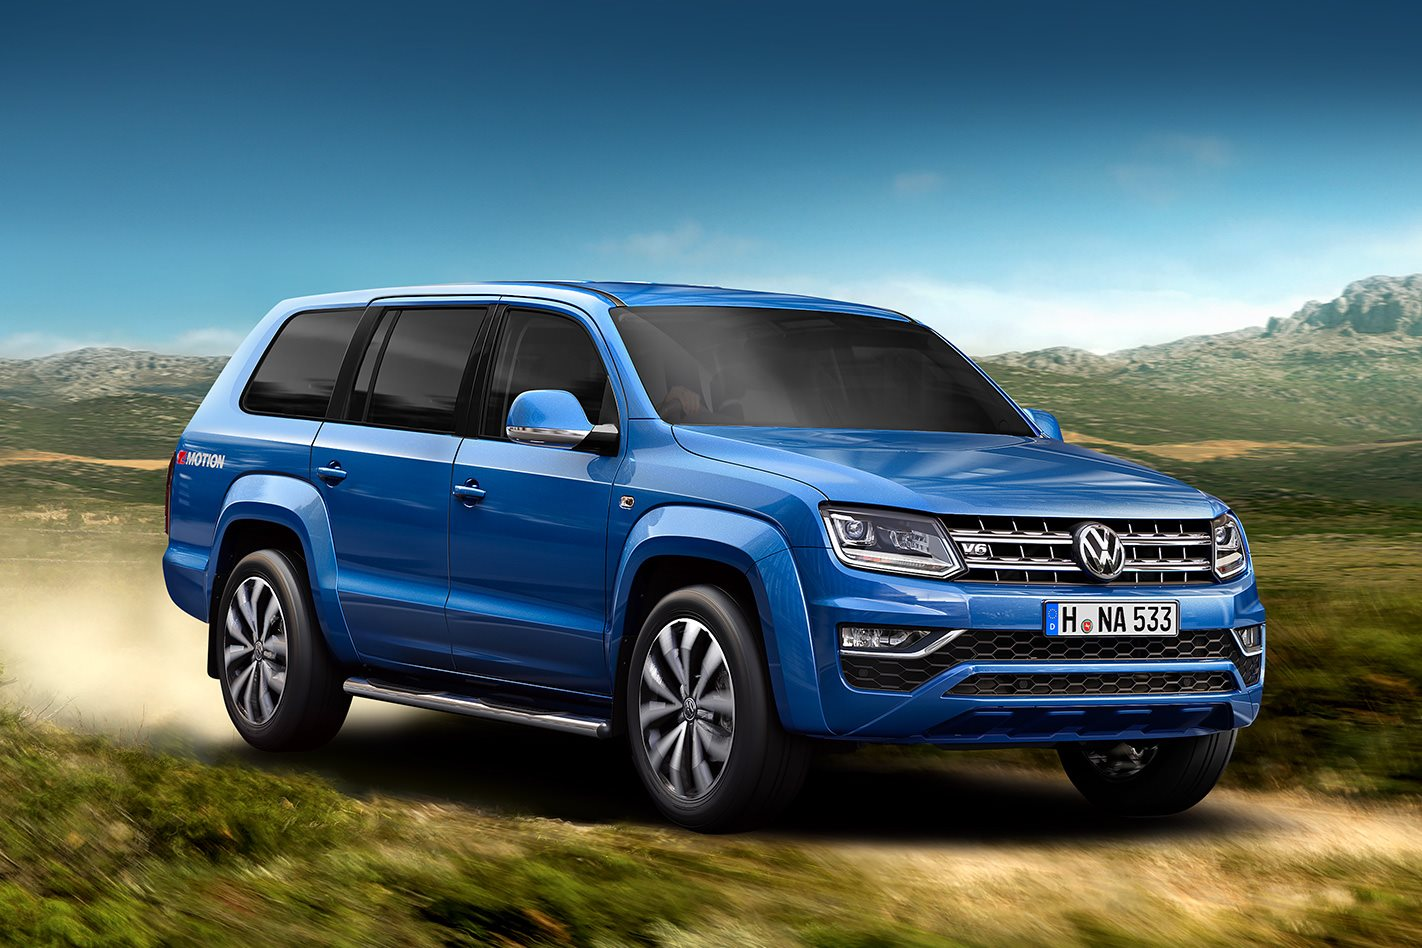 volkswagen confirms amarok wagon 4x4 australia. Black Bedroom Furniture Sets. Home Design Ideas